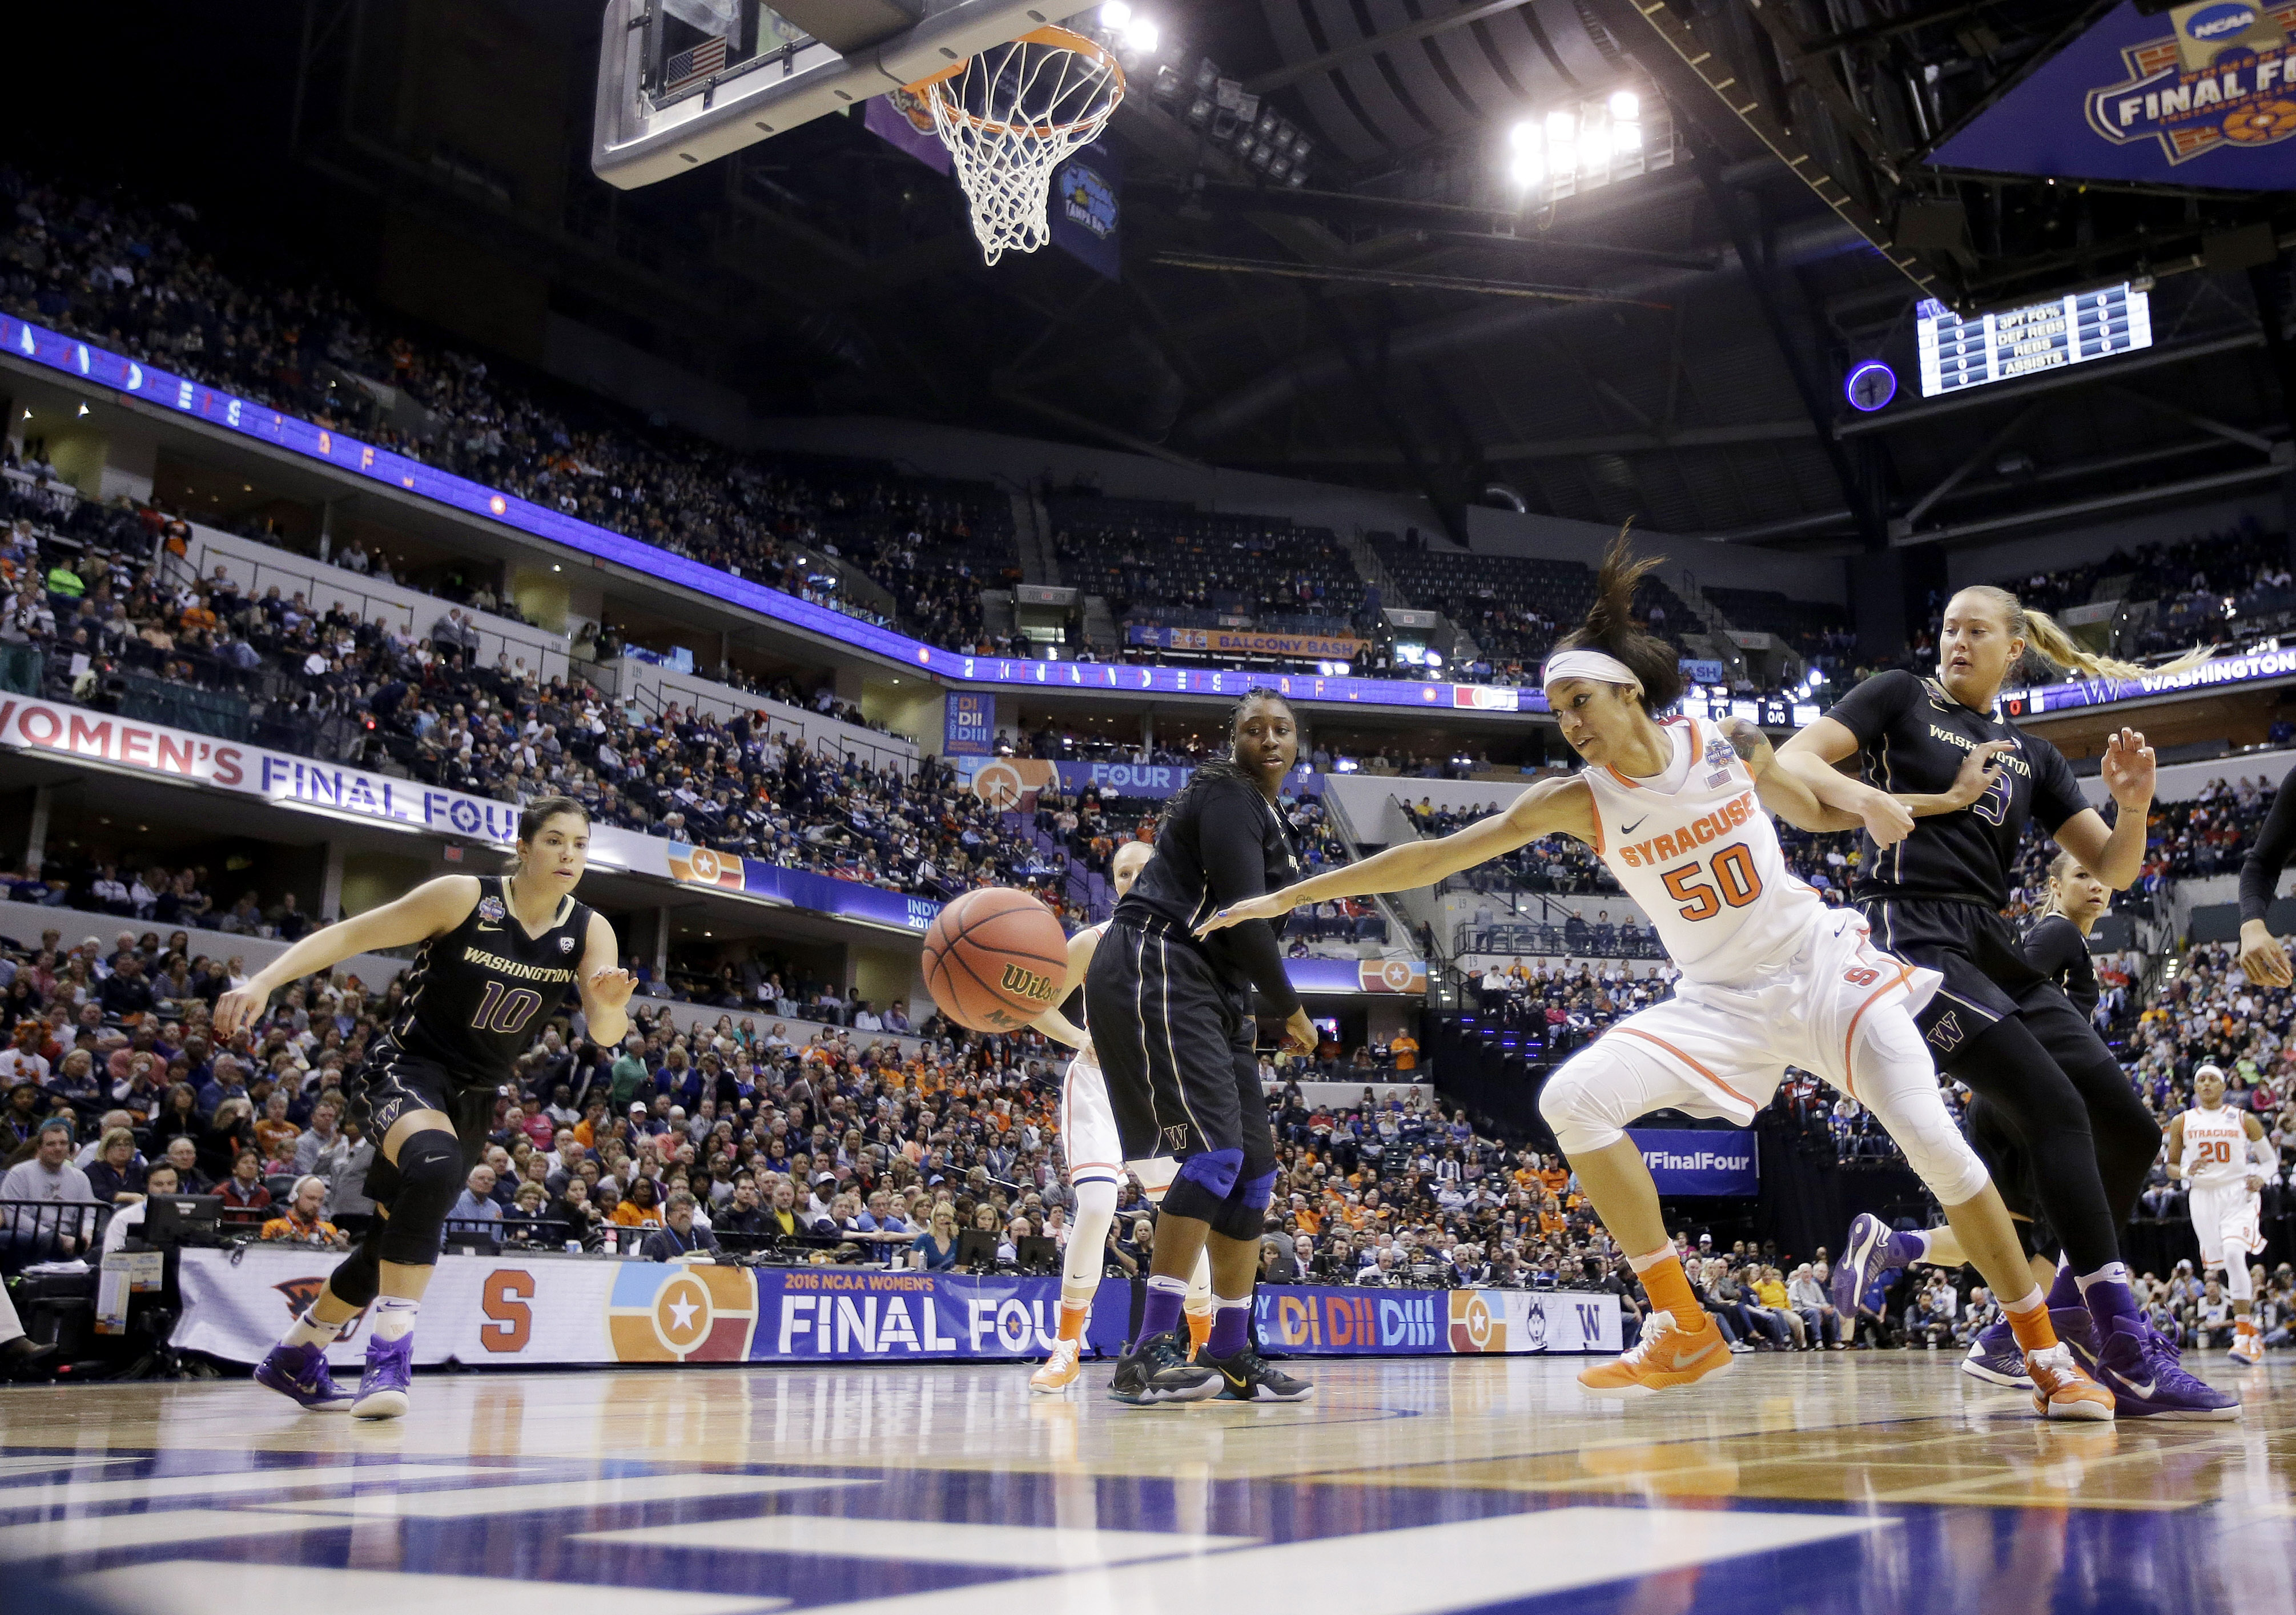 Syracuse's Briana Day (50) goes for a loose ball against Washington's Katie Collier (13) as Kelsey Plum (10) moves in during the first half of a national semifinal game at the women's Final Four in the NCAA college basketball tournament Sunday, April 3, 2